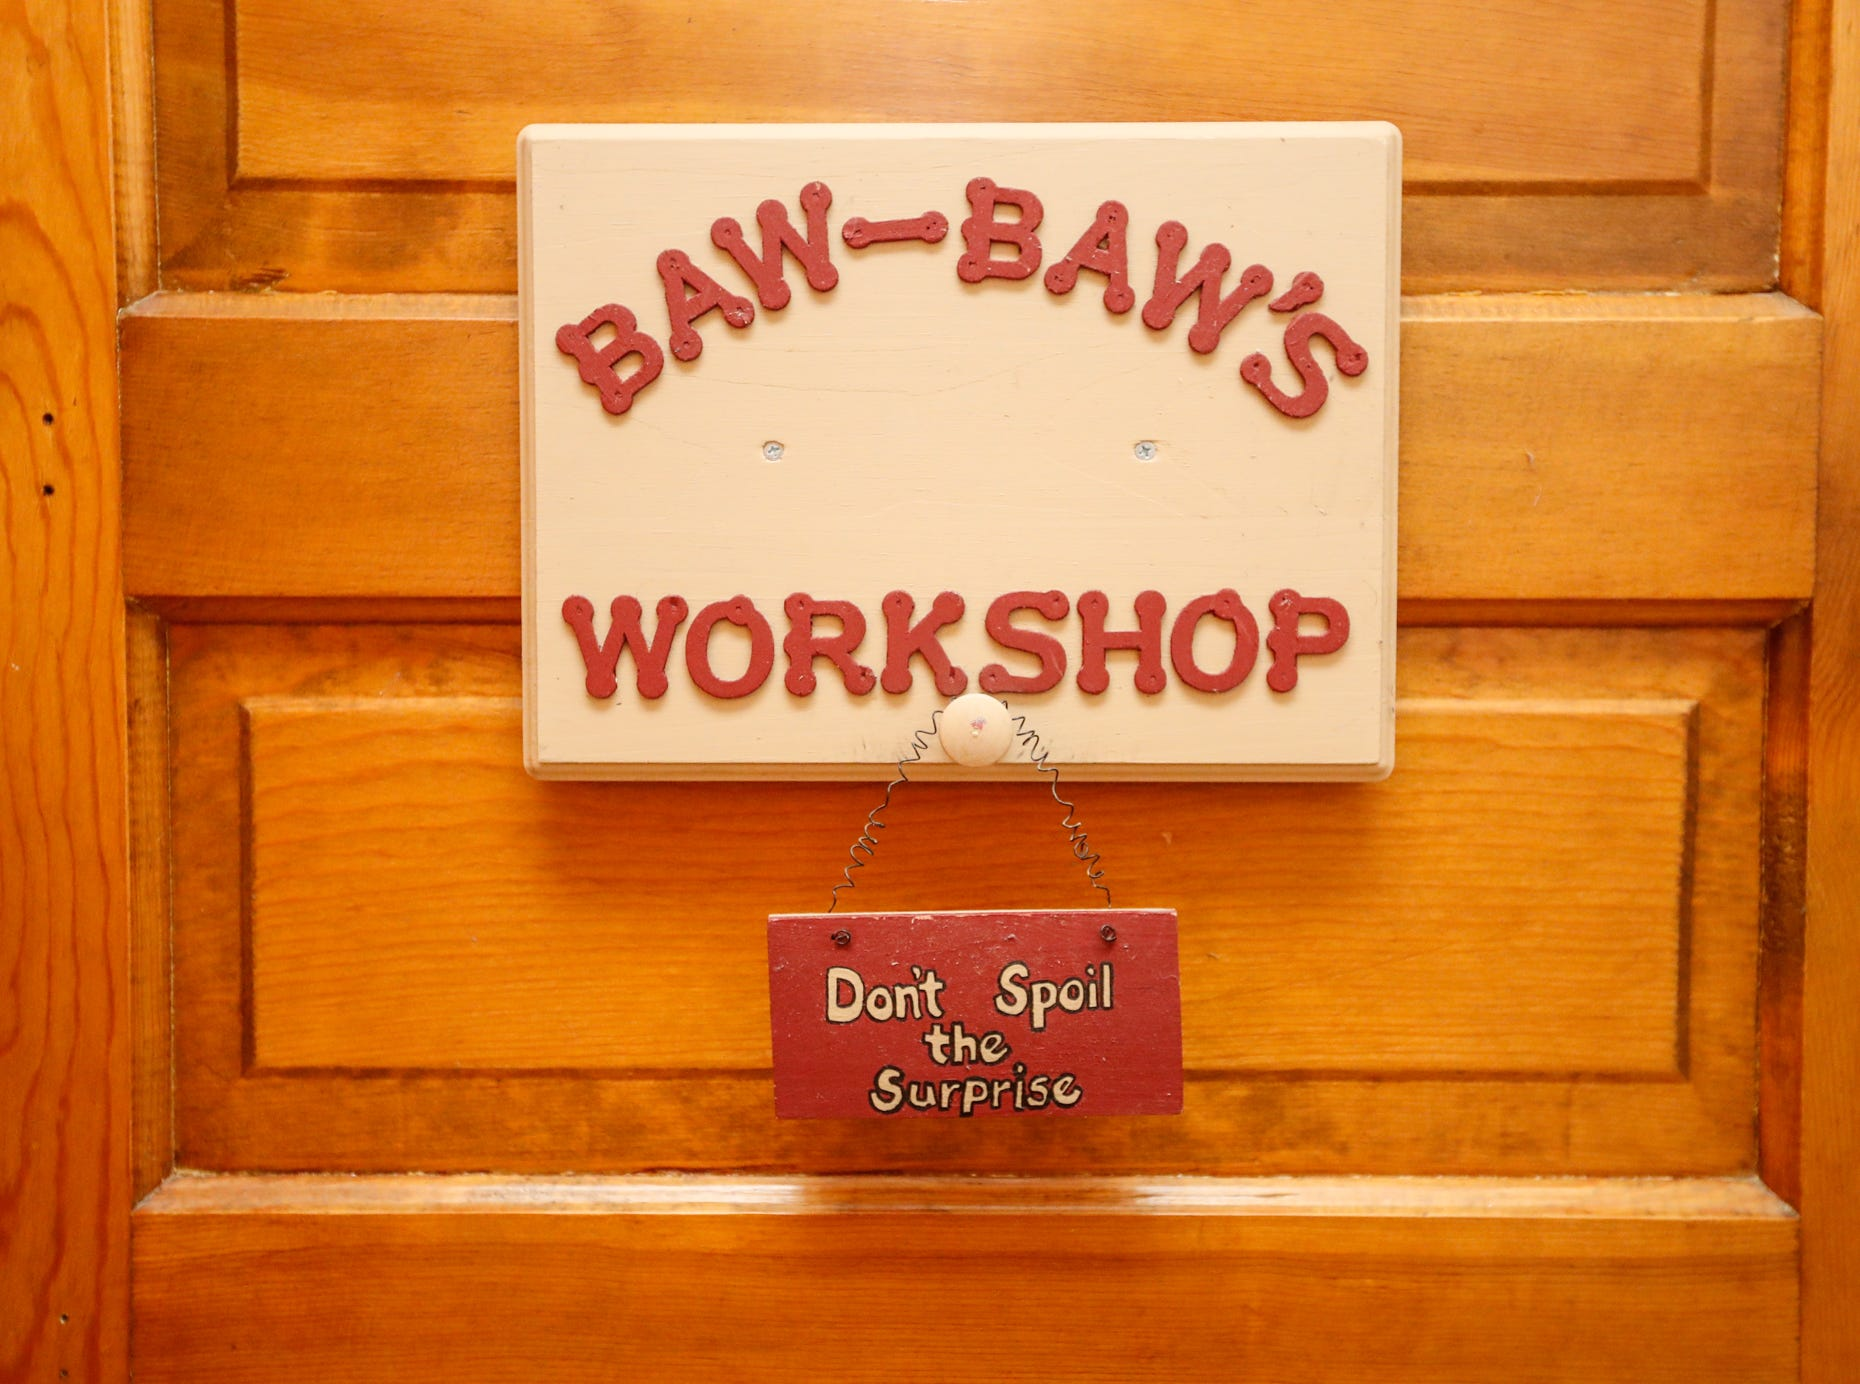 A sign welcomes family to Baw-Baw's Workshop in the 1903 home belonging to Ruth and Russell Schwartz features original wood and builtins, during the Carmel Clay Historical Society Holiday Home Tour in Carmel Ind. on Saturday, Dec.1, 2018.